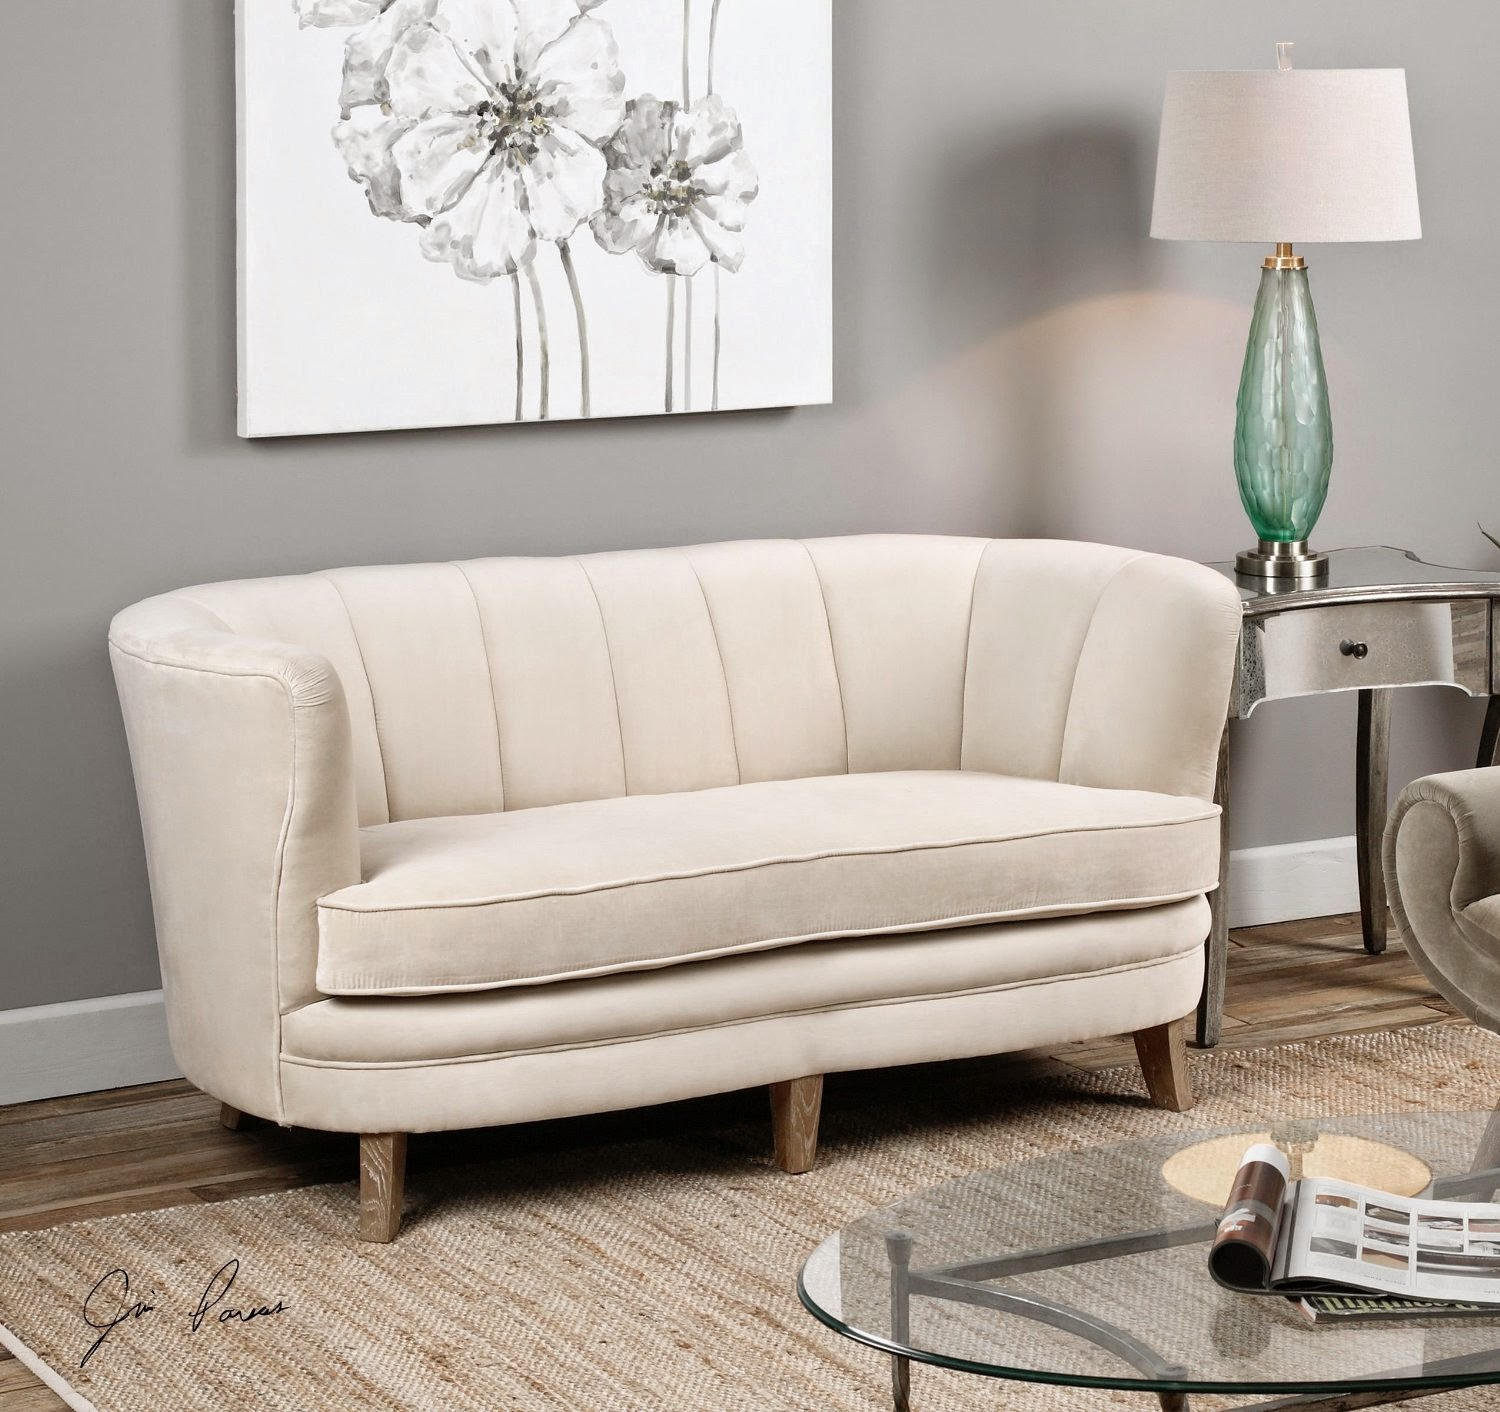 Modern Curved Sofas Reviews: Curved Back Sofas